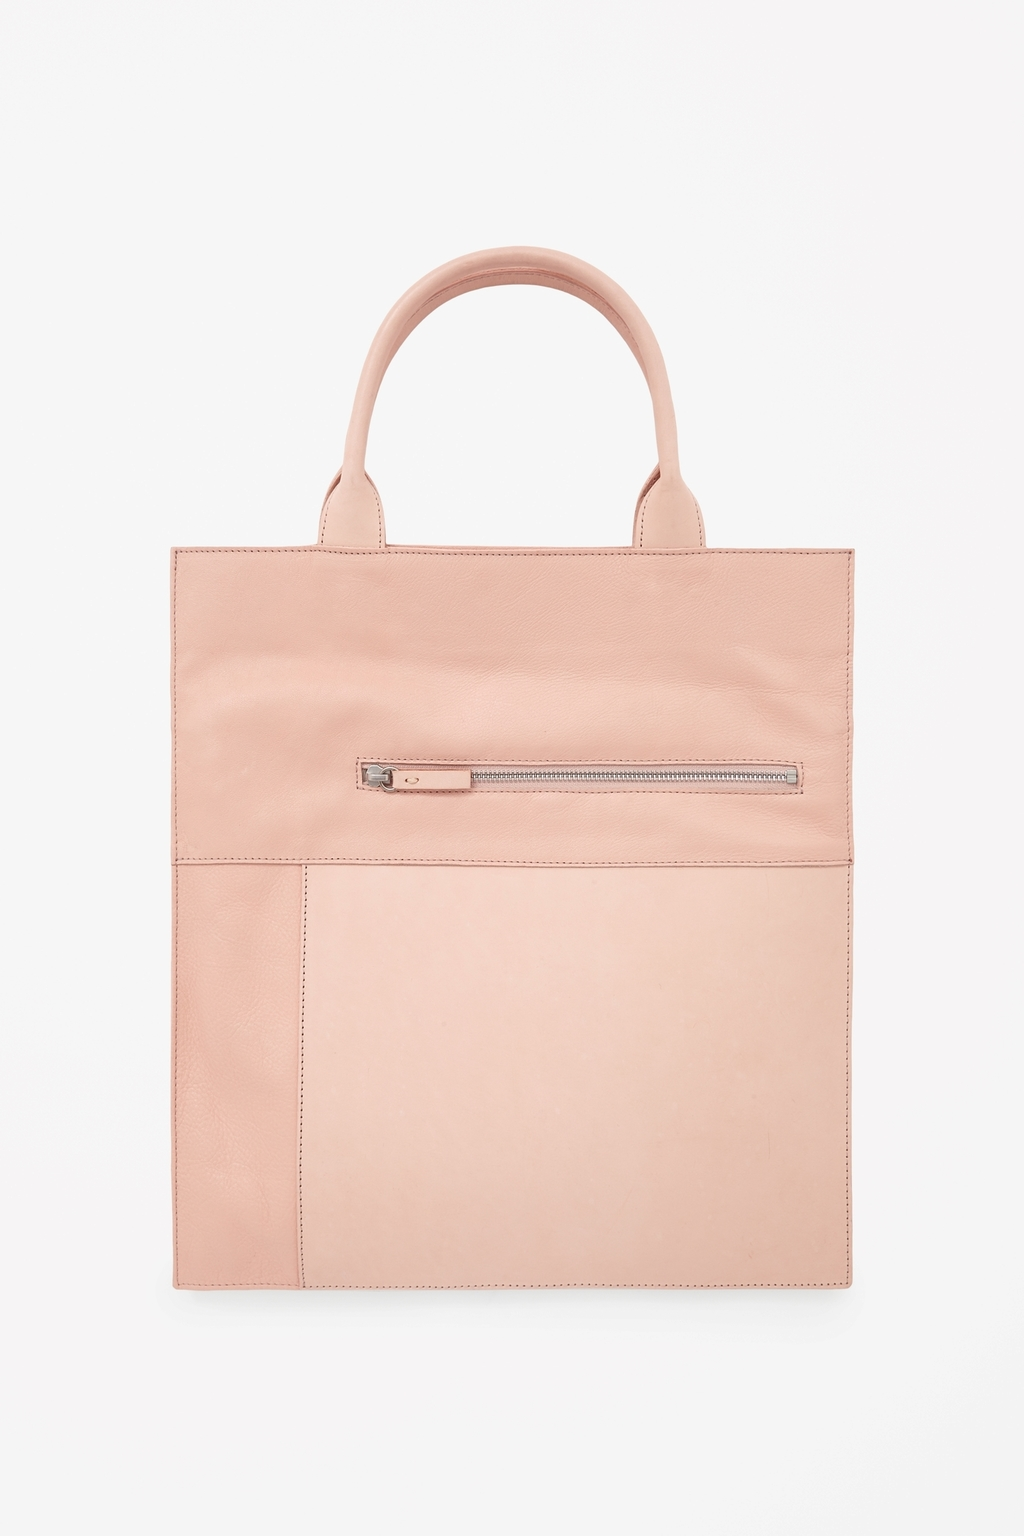 Panelled Leather Tote - predominant colour: nude; occasions: casual, work, creative work; type of pattern: standard; style: shoulder; length: handle; size: standard; material: leather; pattern: plain; finish: plain; season: s/s 2015; wardrobe: investment